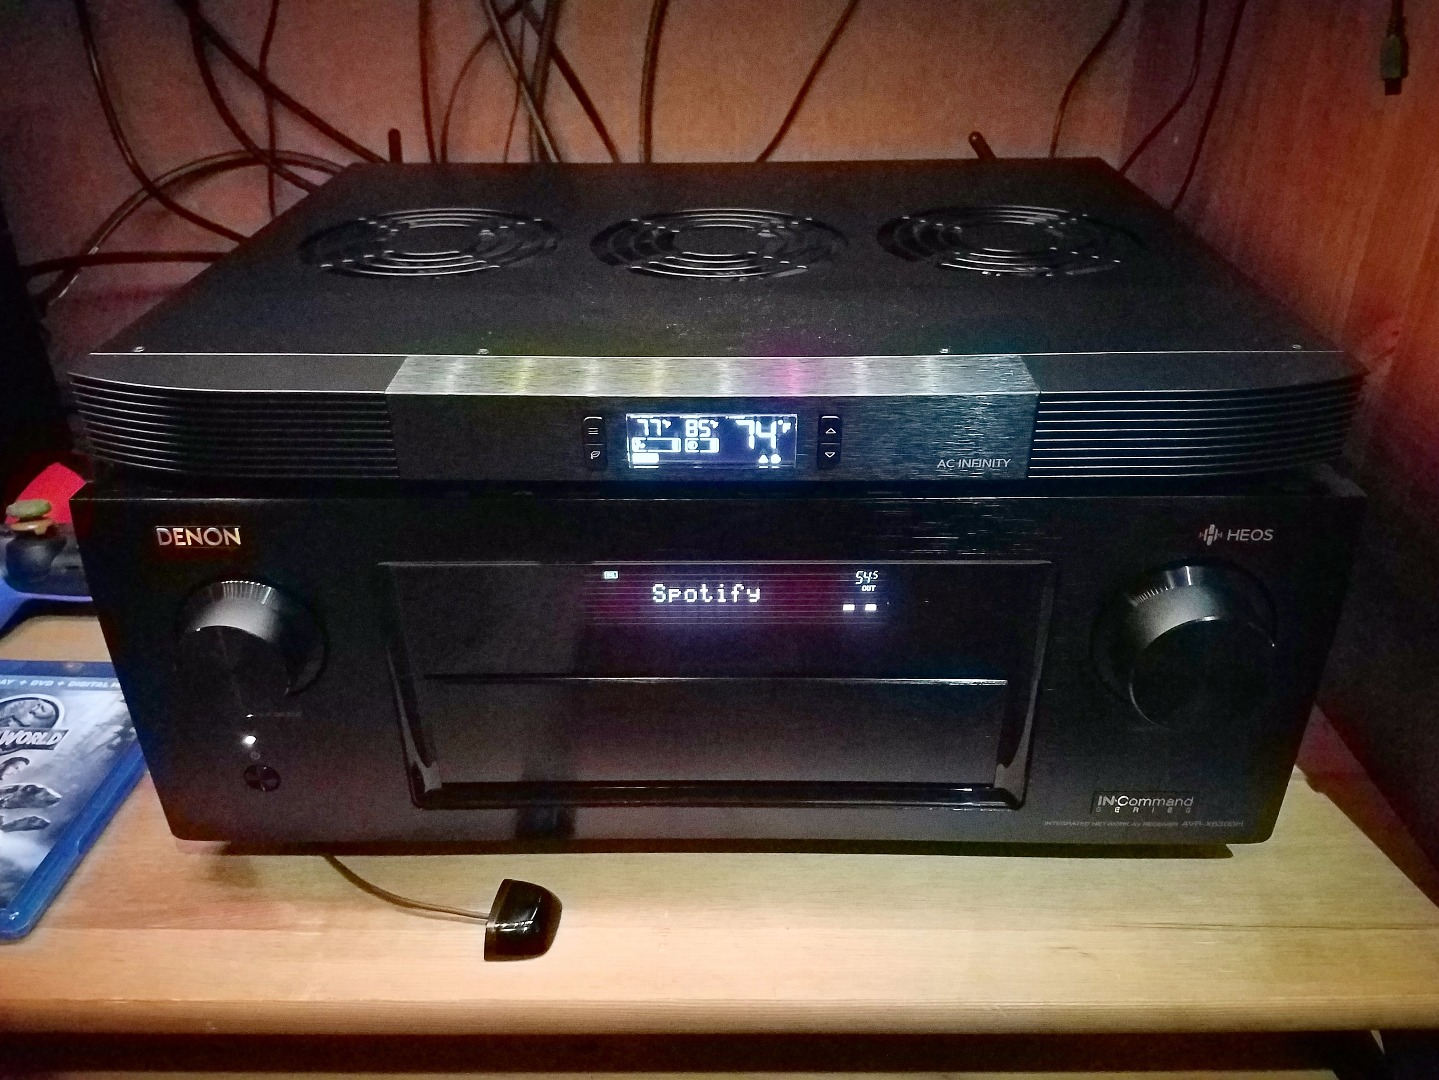 Denon AVR-X6300H IN-Command 11 2-channel home theater receiver with